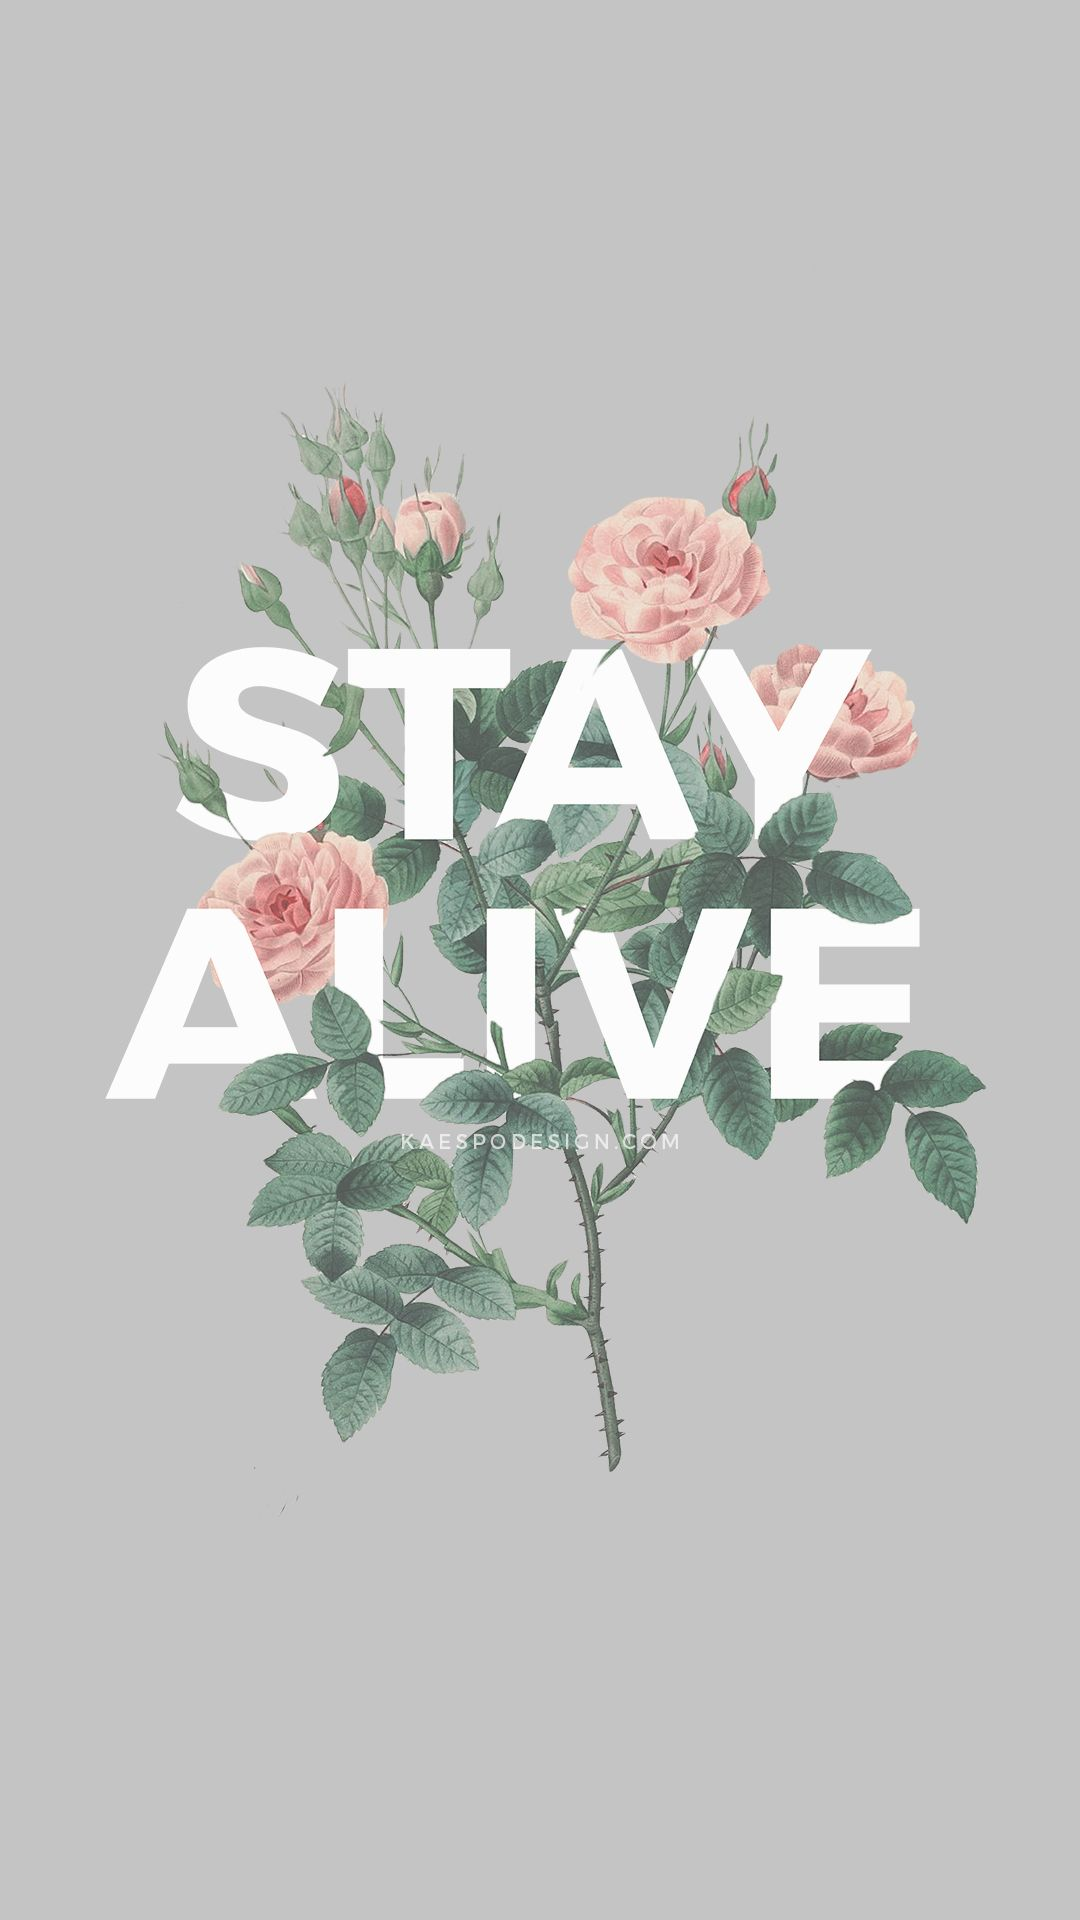 Iphone wallpaper tumblr skull - Lockscreens No 312 Stay Alive Skeleton Lockscreens Get Em As Notebooks Phone Wallpapers Tumblrphone